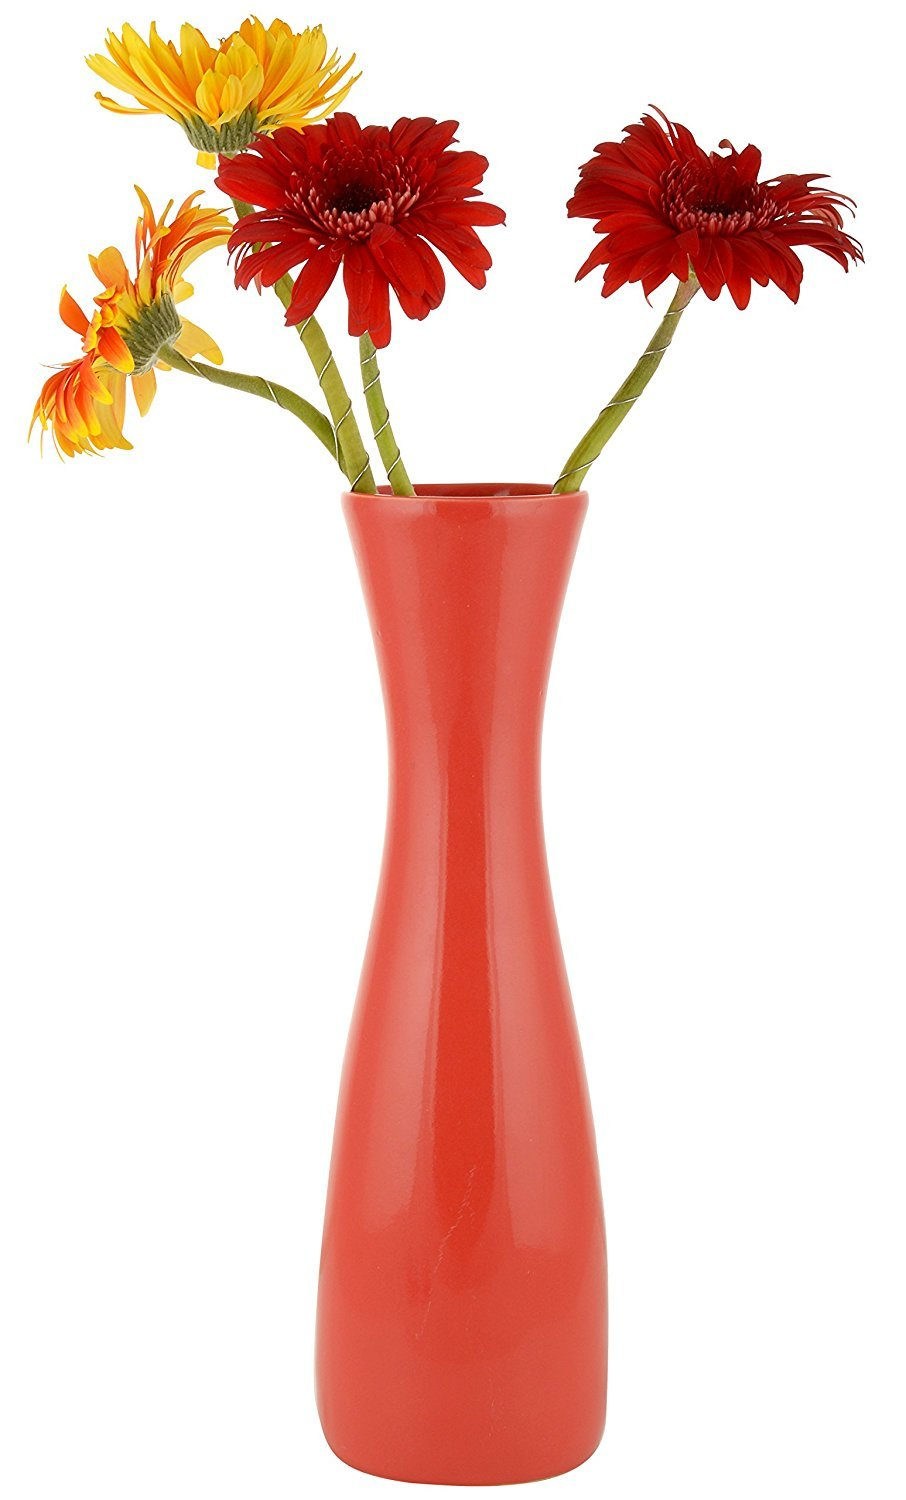 Buy Woodenclave Red Ceramic Flower Vase Sleek Flower Vase for Home and Office Online at Low Prices in India - Amazon.in  sc 1 st  Amazon.in & Buy Woodenclave Red Ceramic Flower Vase Sleek Flower Vase for Home ...